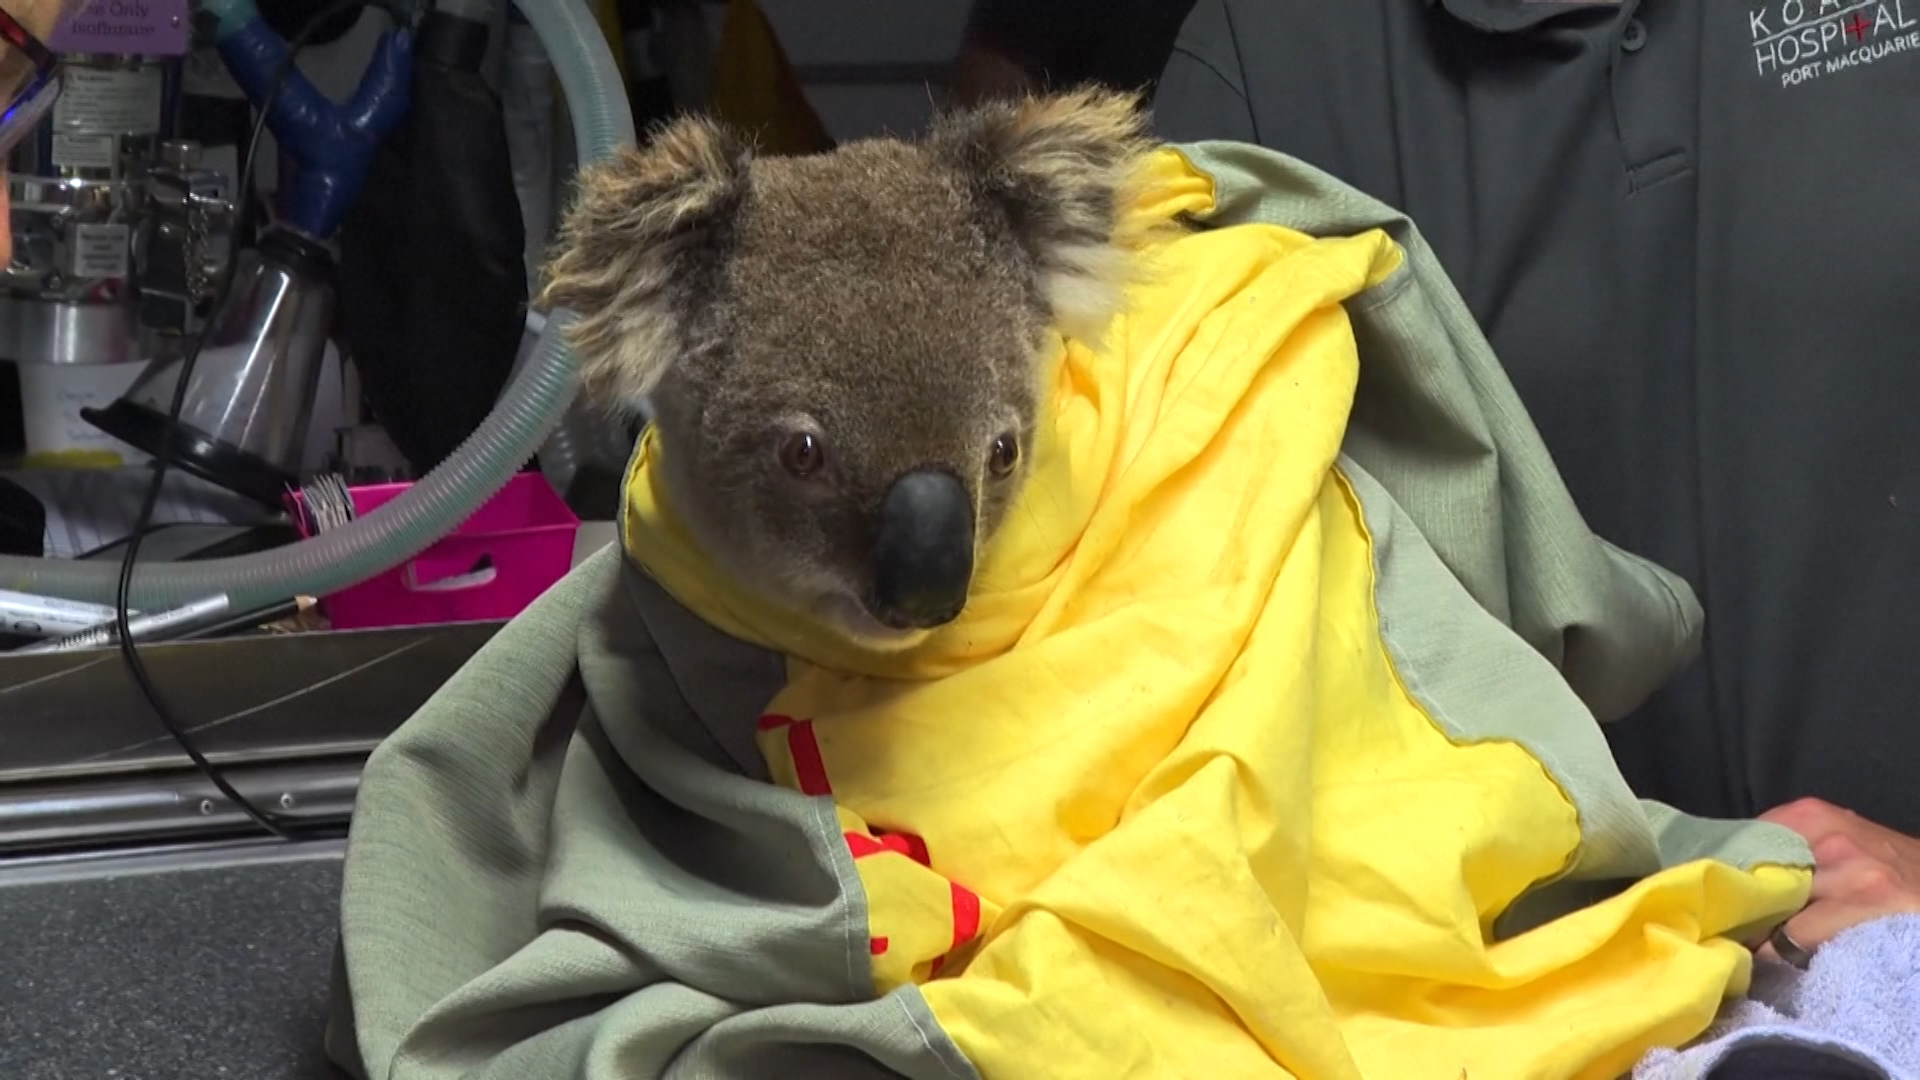 A koala receives medical care in this photo obtained by CNN from CCTV Australia in December 2019.